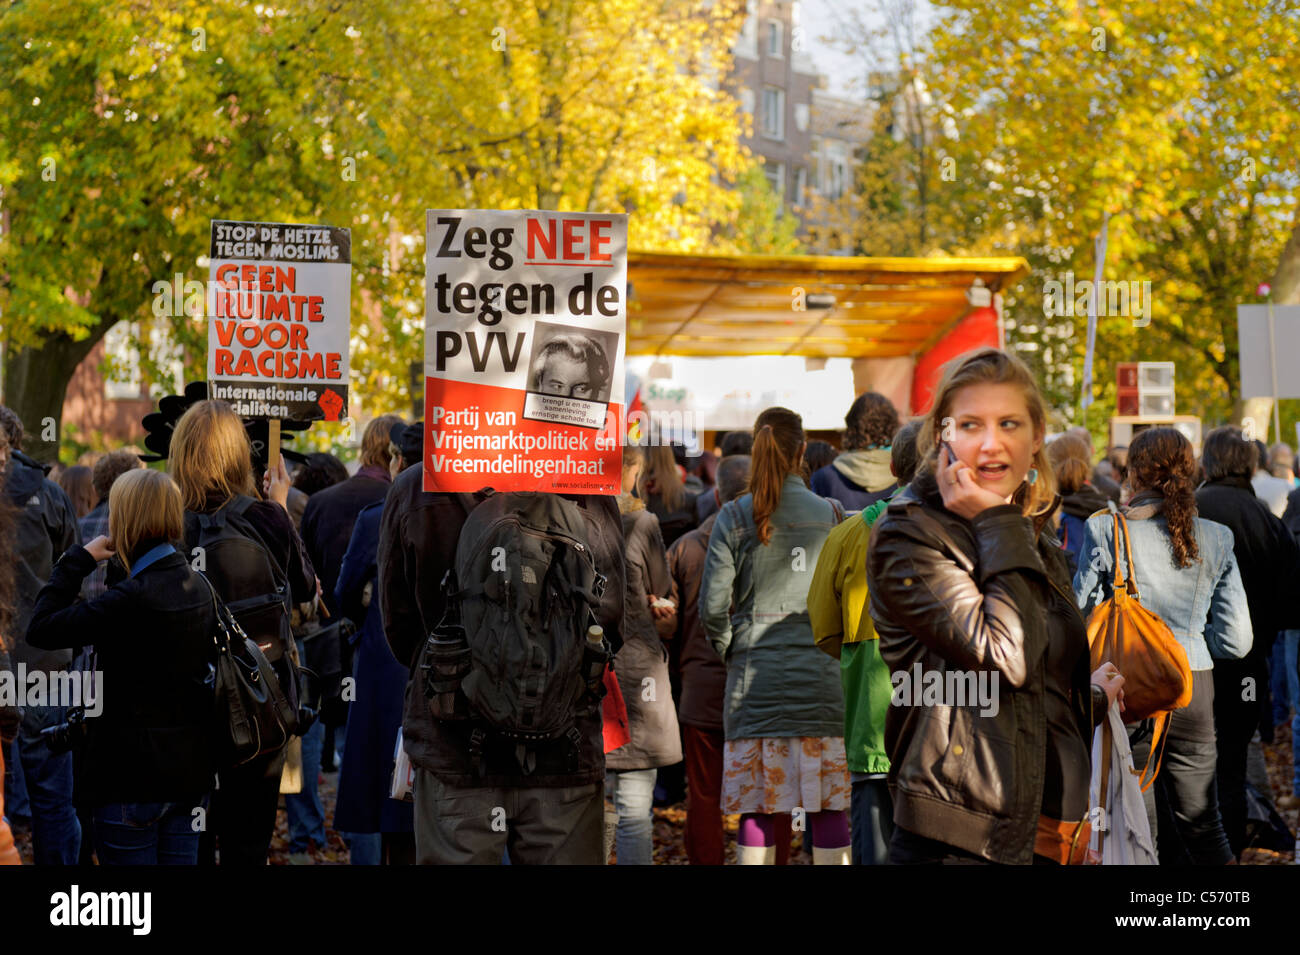 Girl makes a phone call during an anti-racism demonstration in Amsterdam watched by eyes in placard - Stock Image